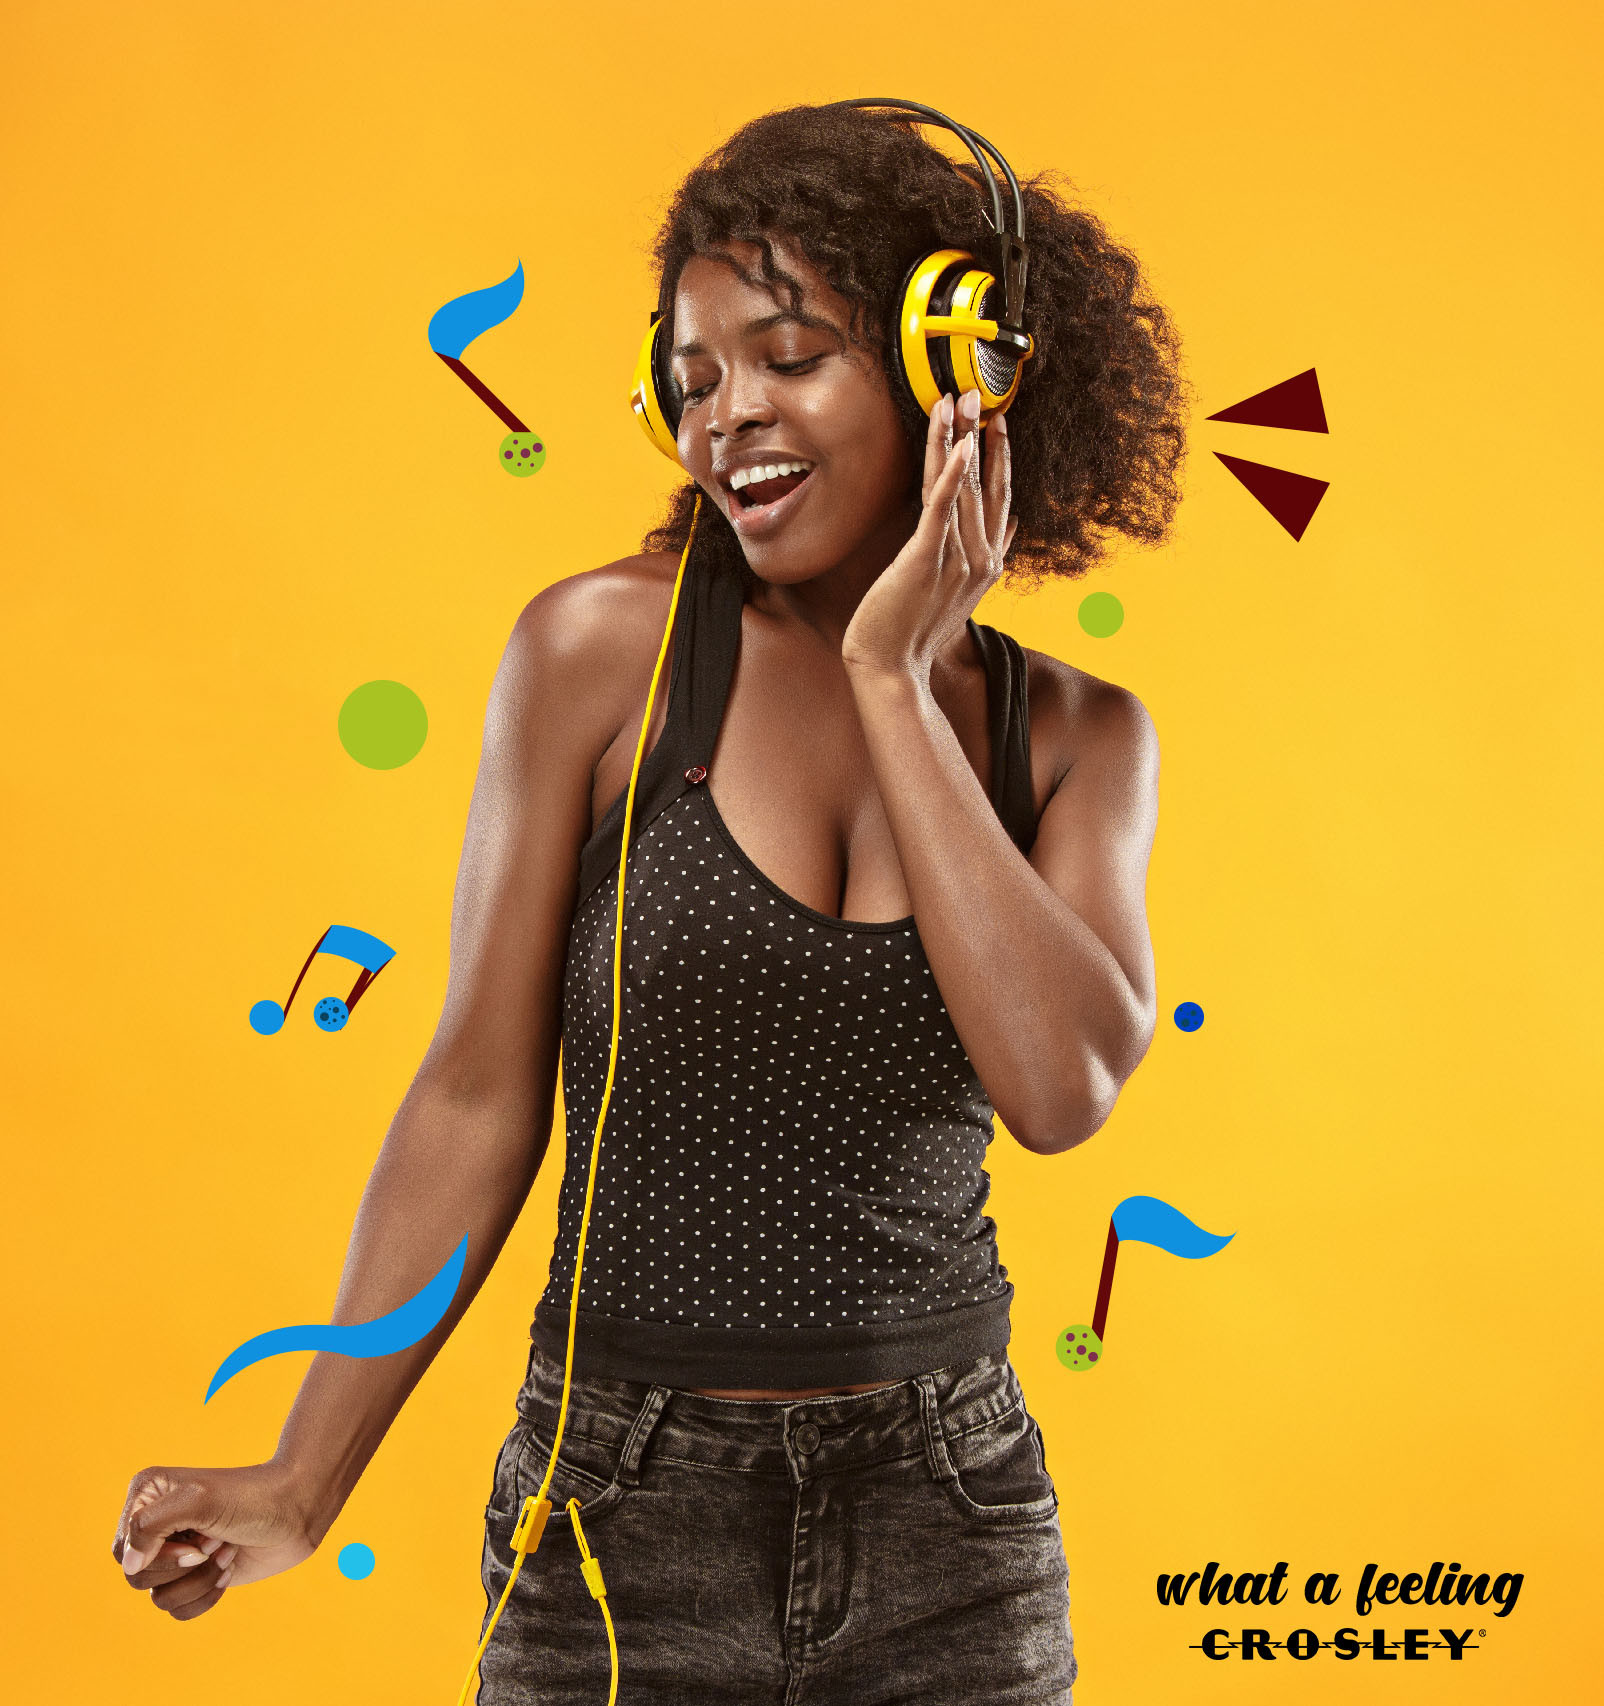 What A Feeling (App Ad Campaign)